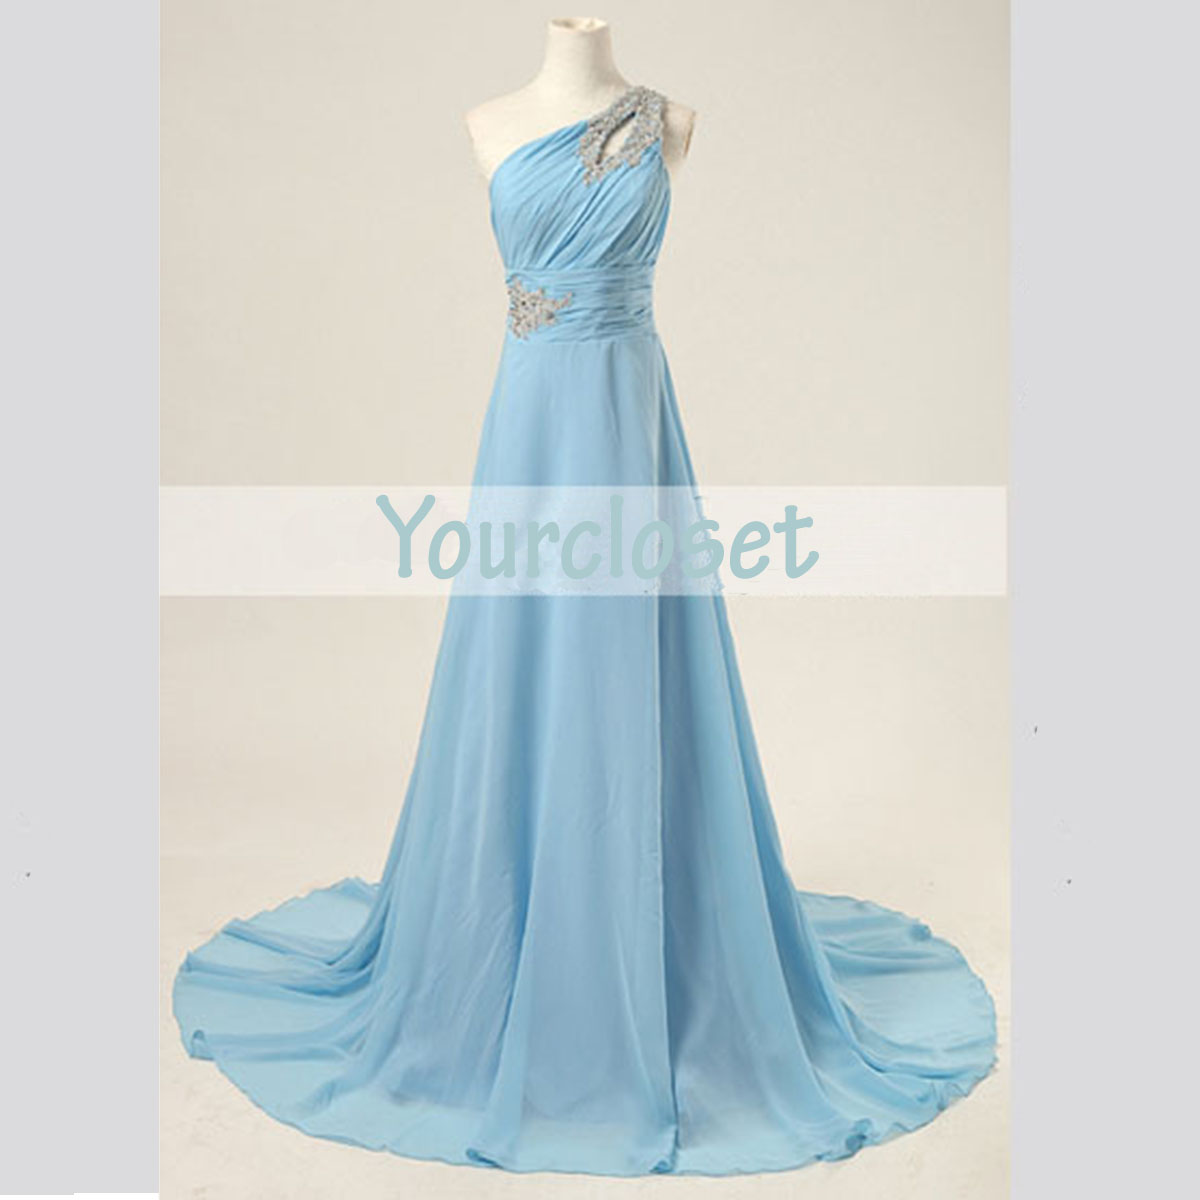 Prom Dresses Light Blue One Shoulder - Boutique Prom Dresses